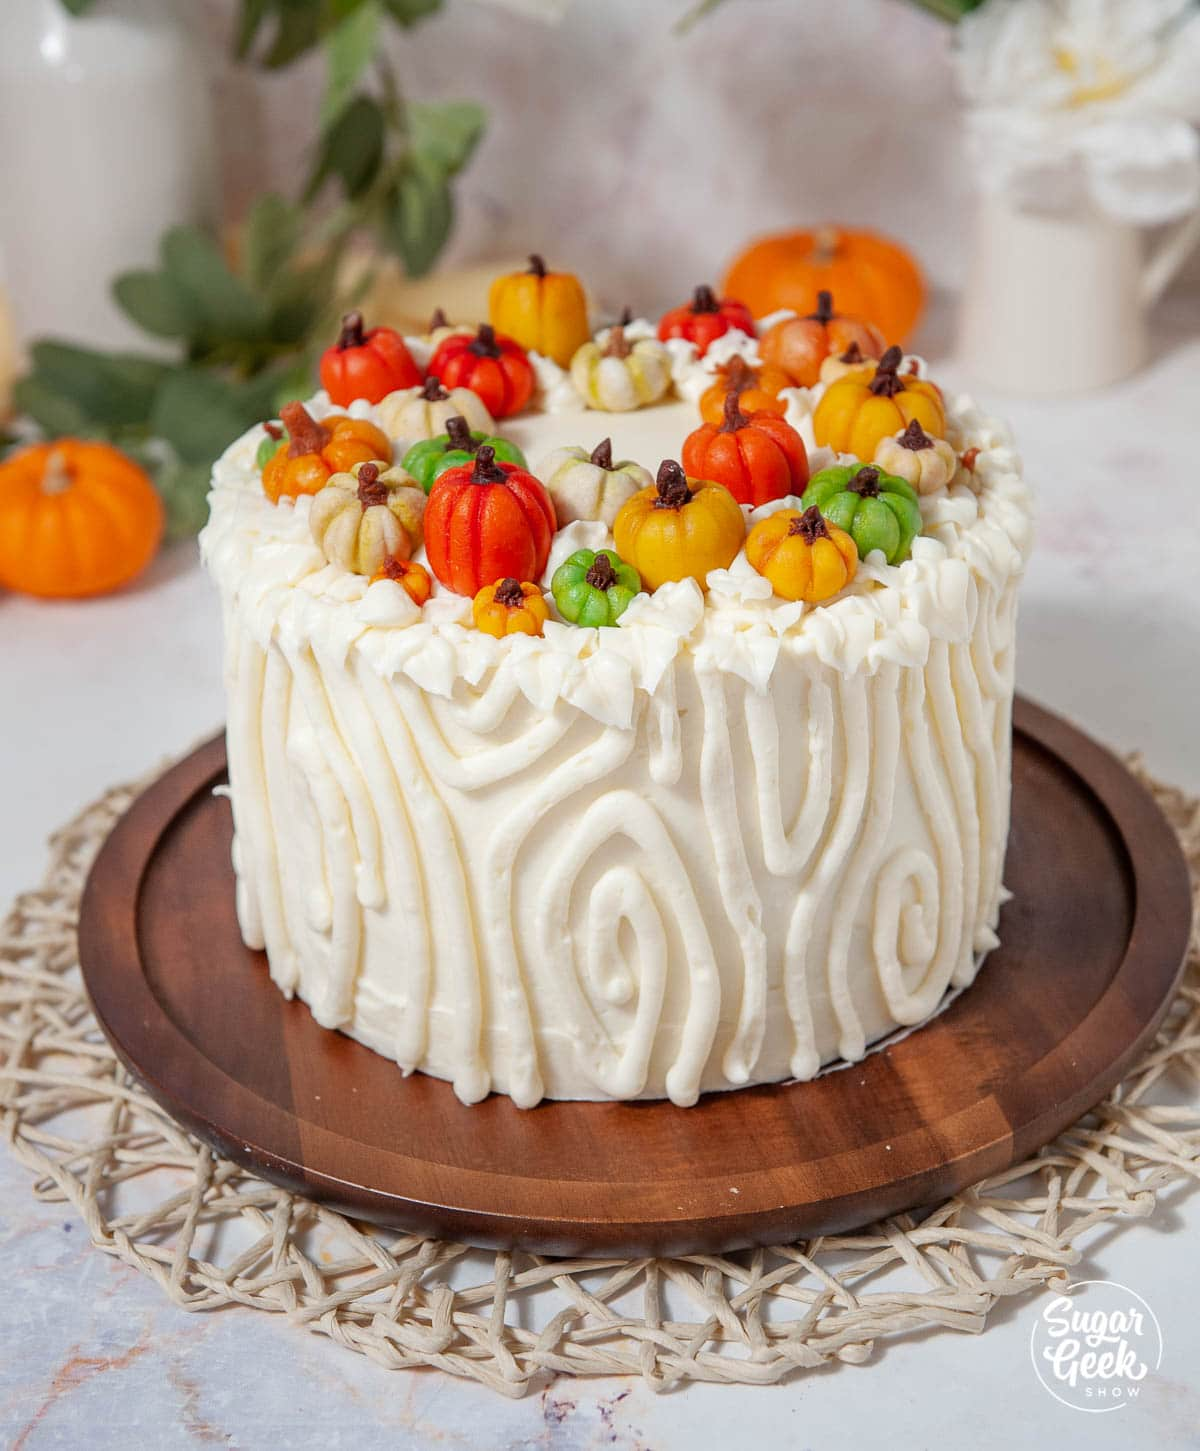 pumpkin spice cake with marzipan pumpkins on top